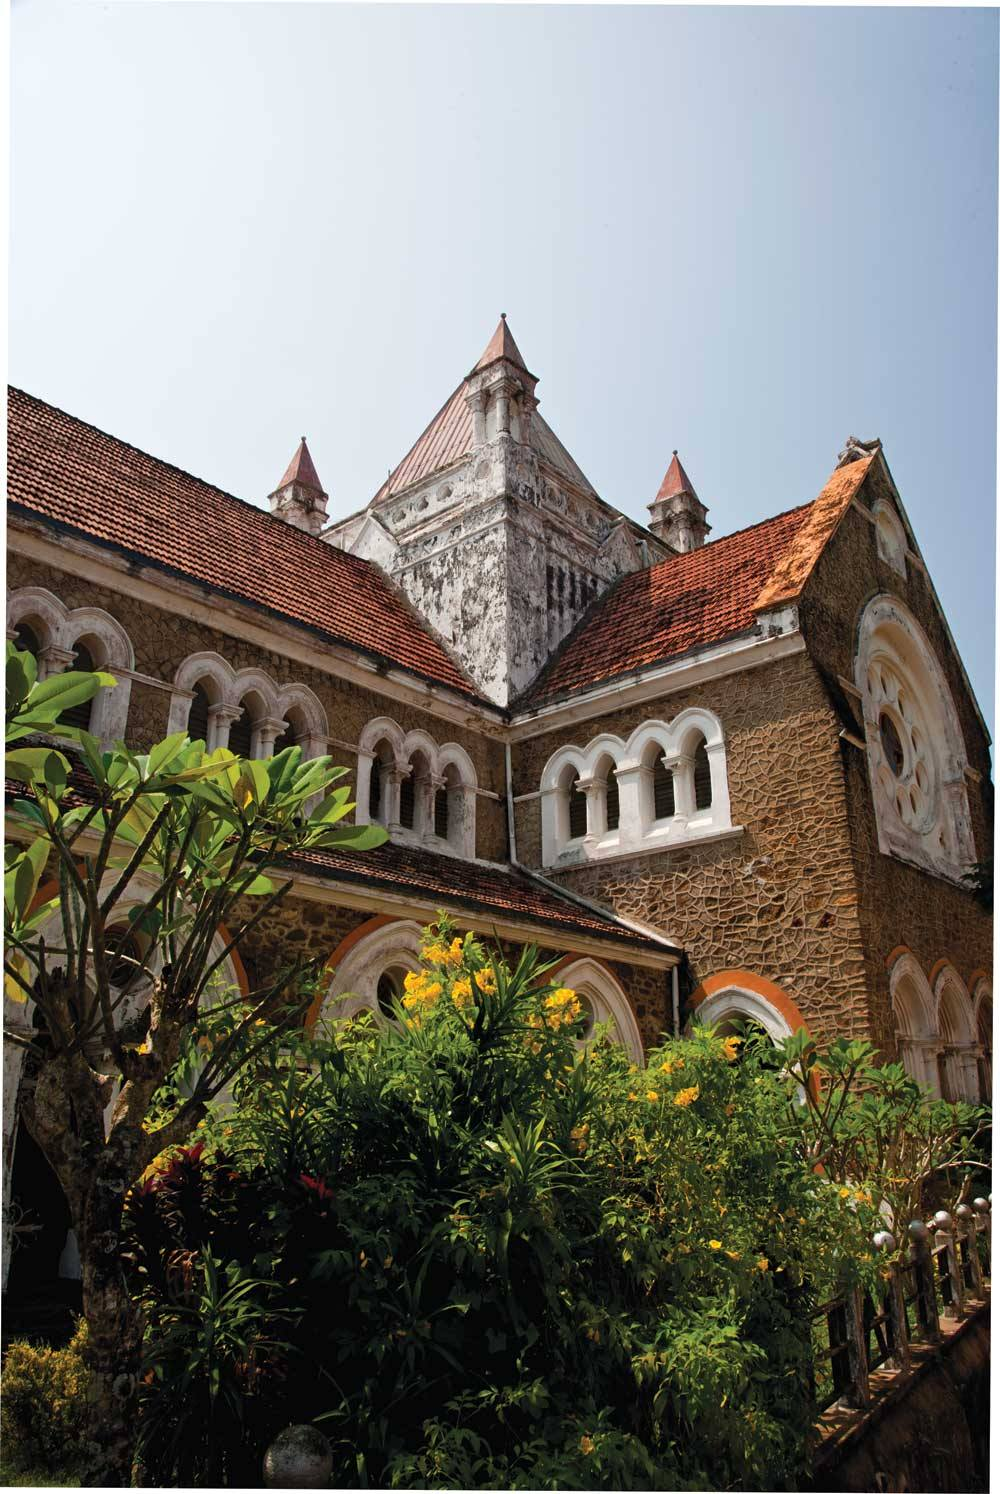 One of the many historic buildings in Fort Galle.